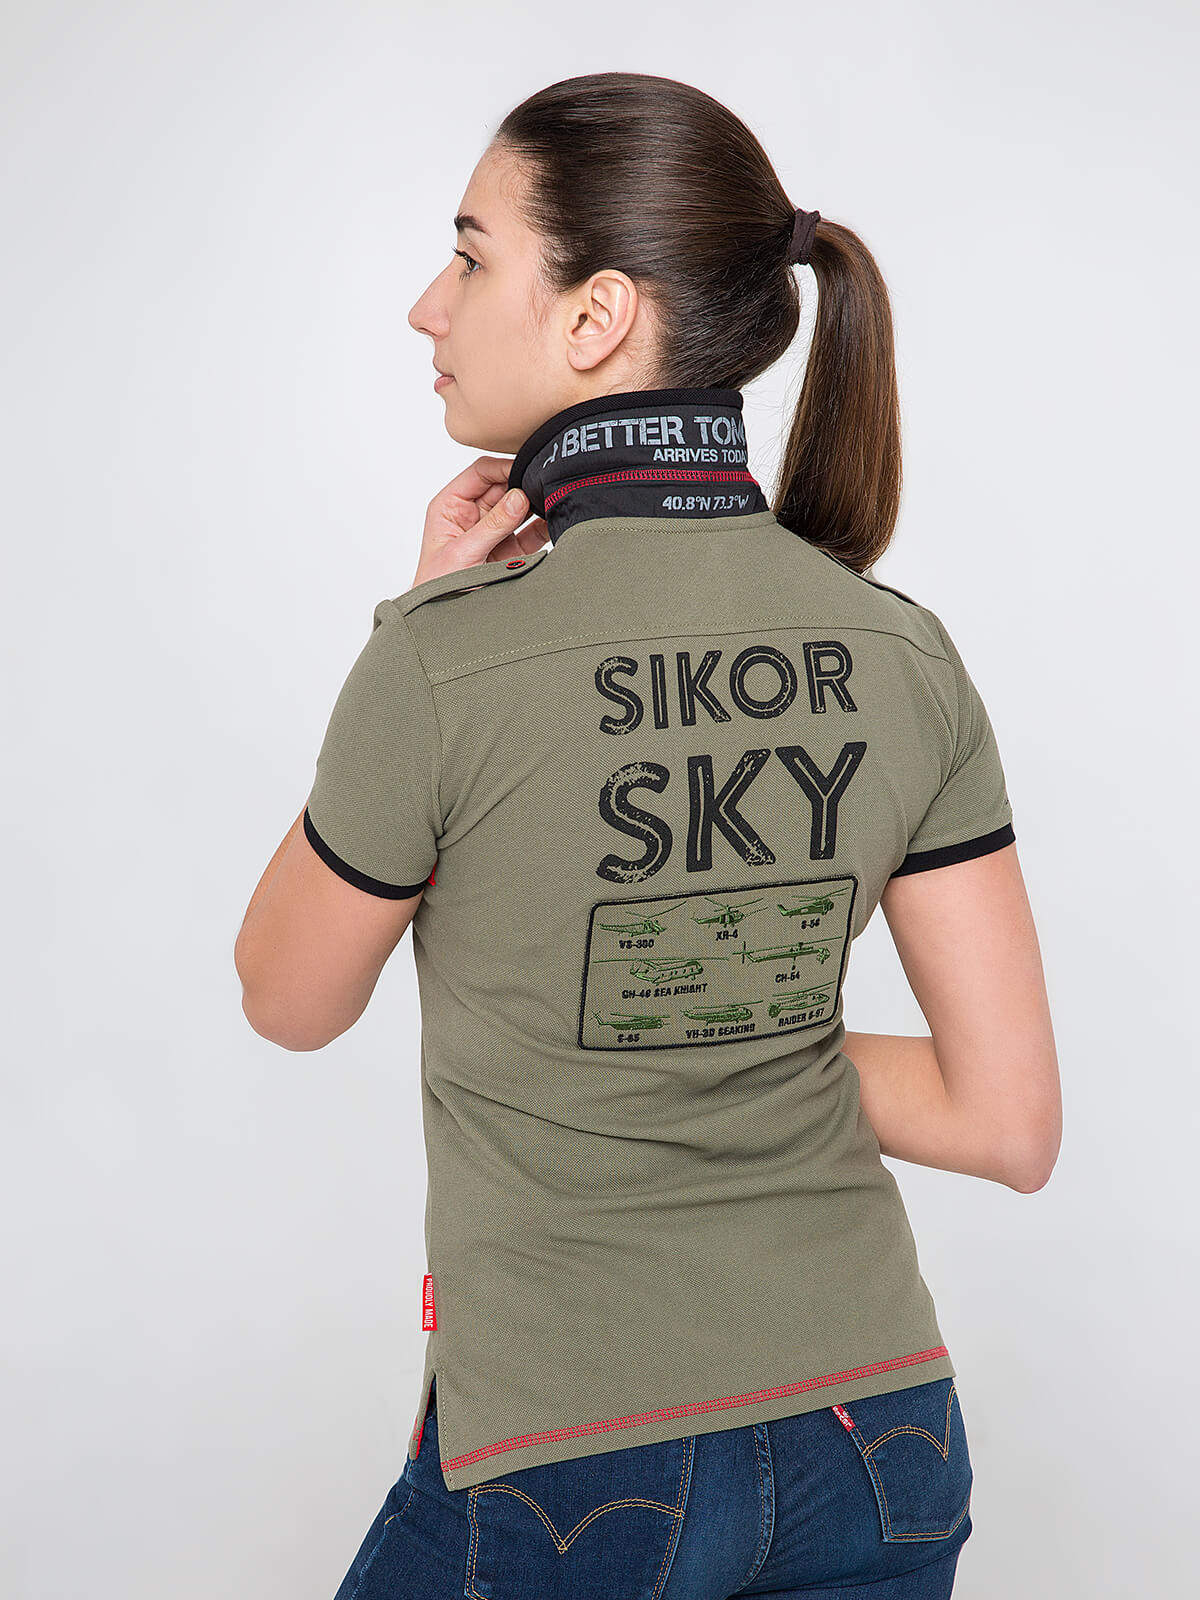 Women's Polo Shirt Sikorsky. Color khaki.  Technique of prints applied: embroidery, silkscreen printing, chevron.